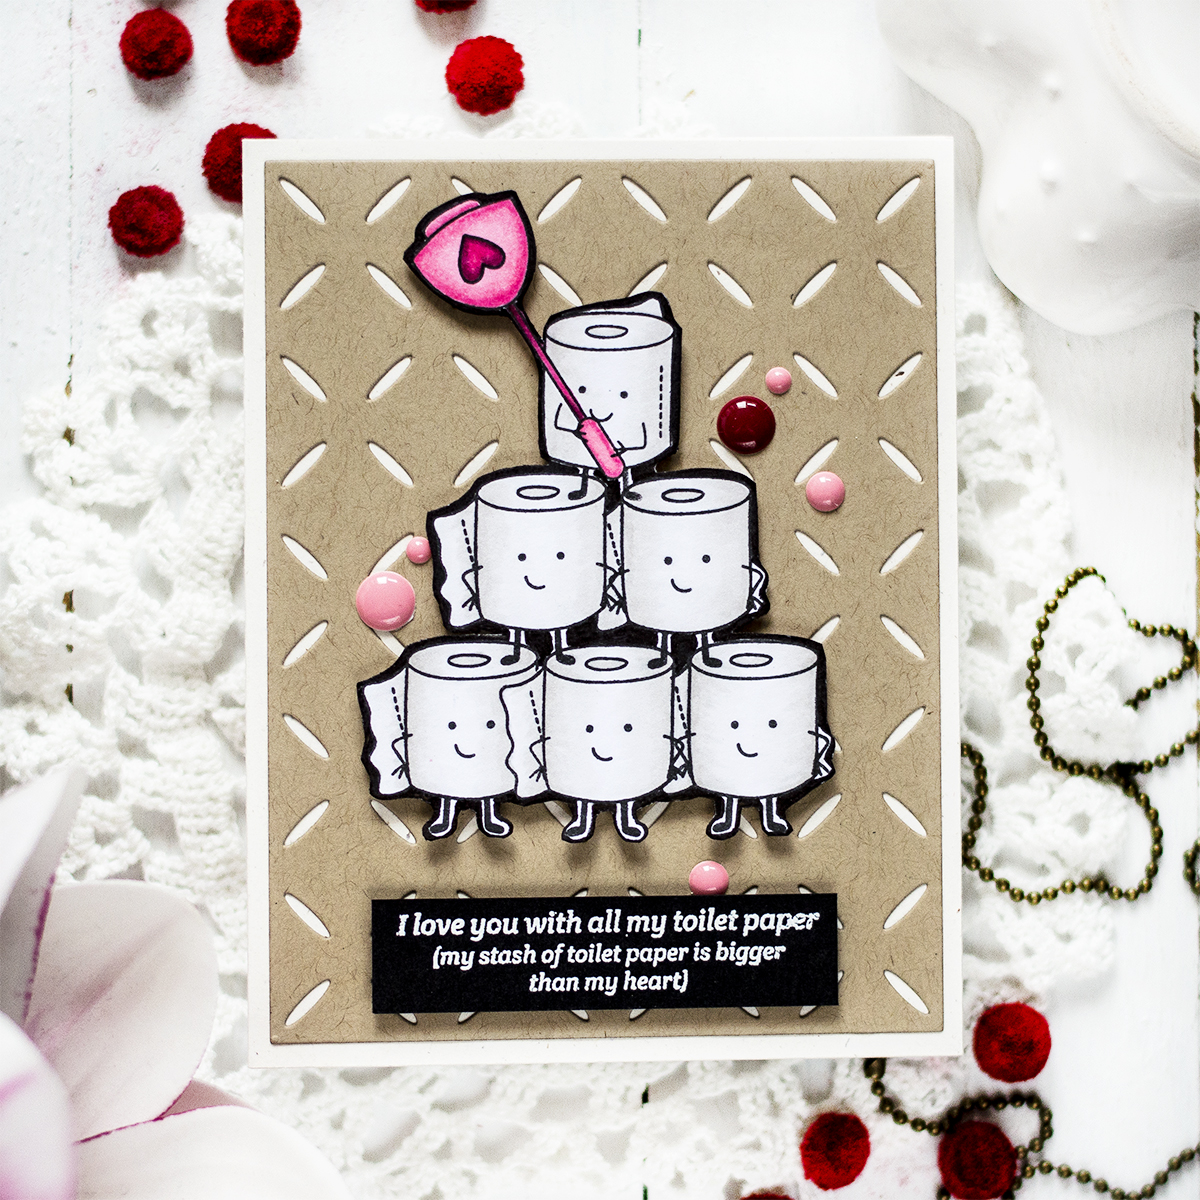 Fun Toilet Paper Card. Card by Svitlana Shayevich